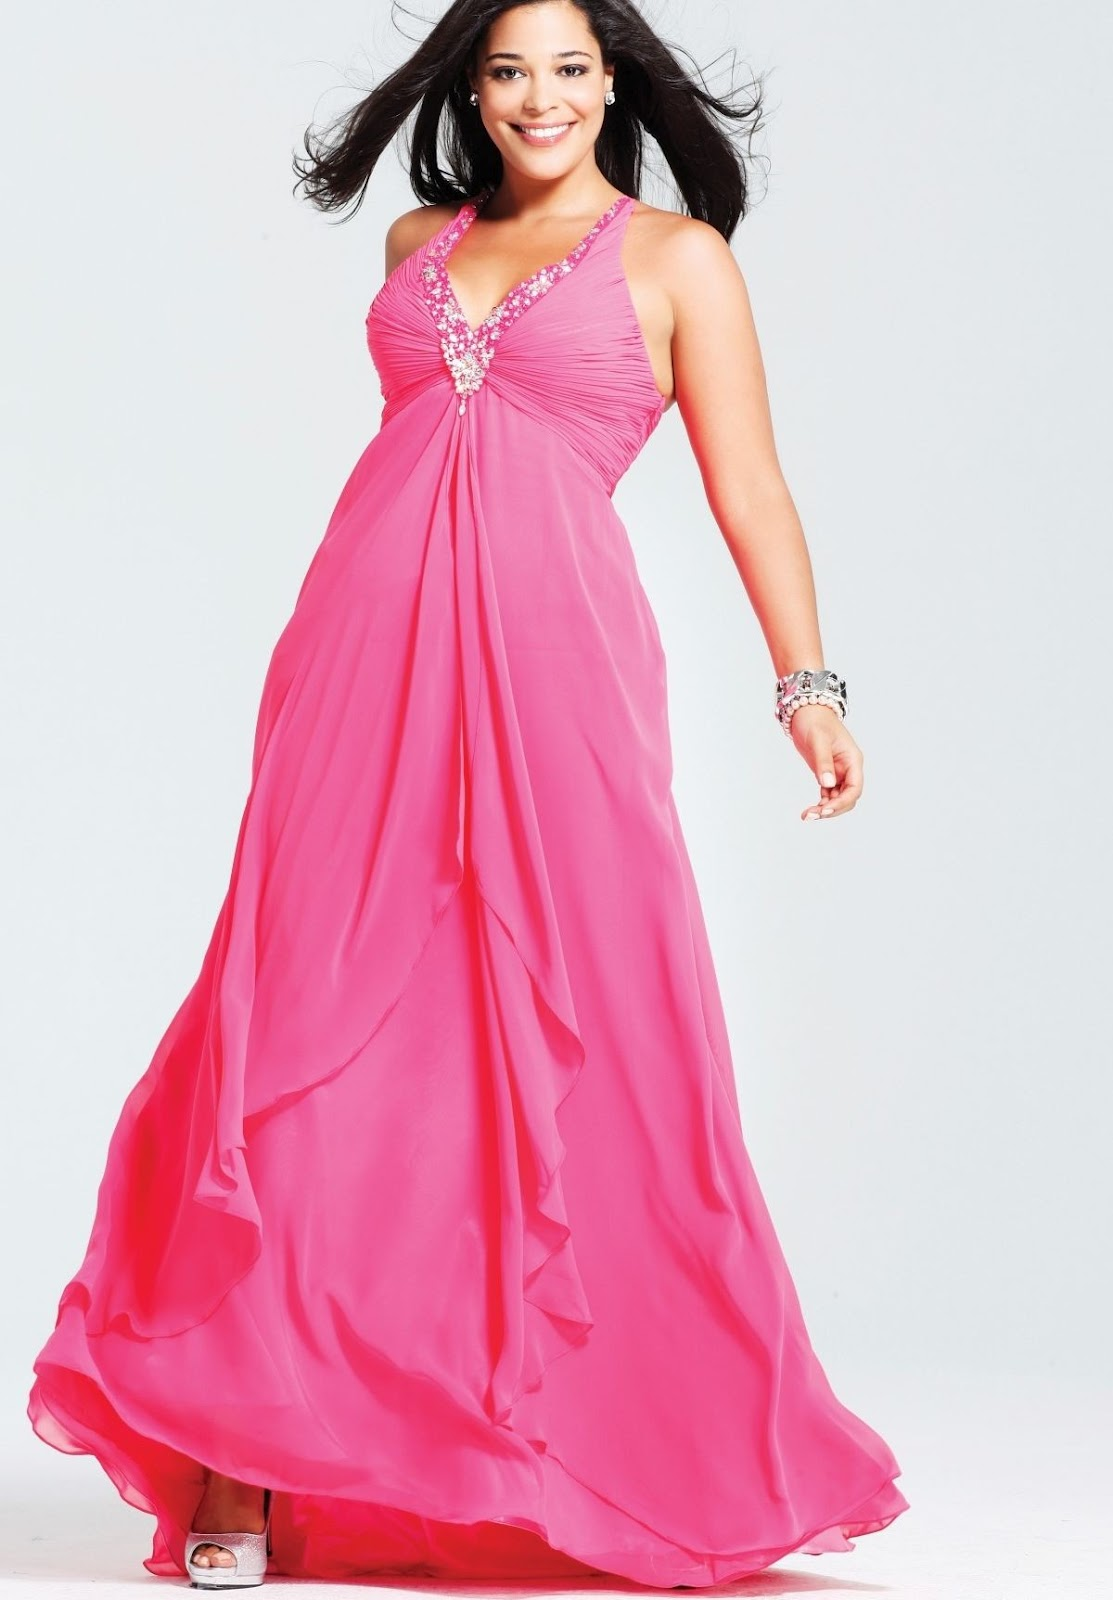 WhiteAzalea Prom Dresses: Cheap Plus Size Prom Dresses In Red for ...